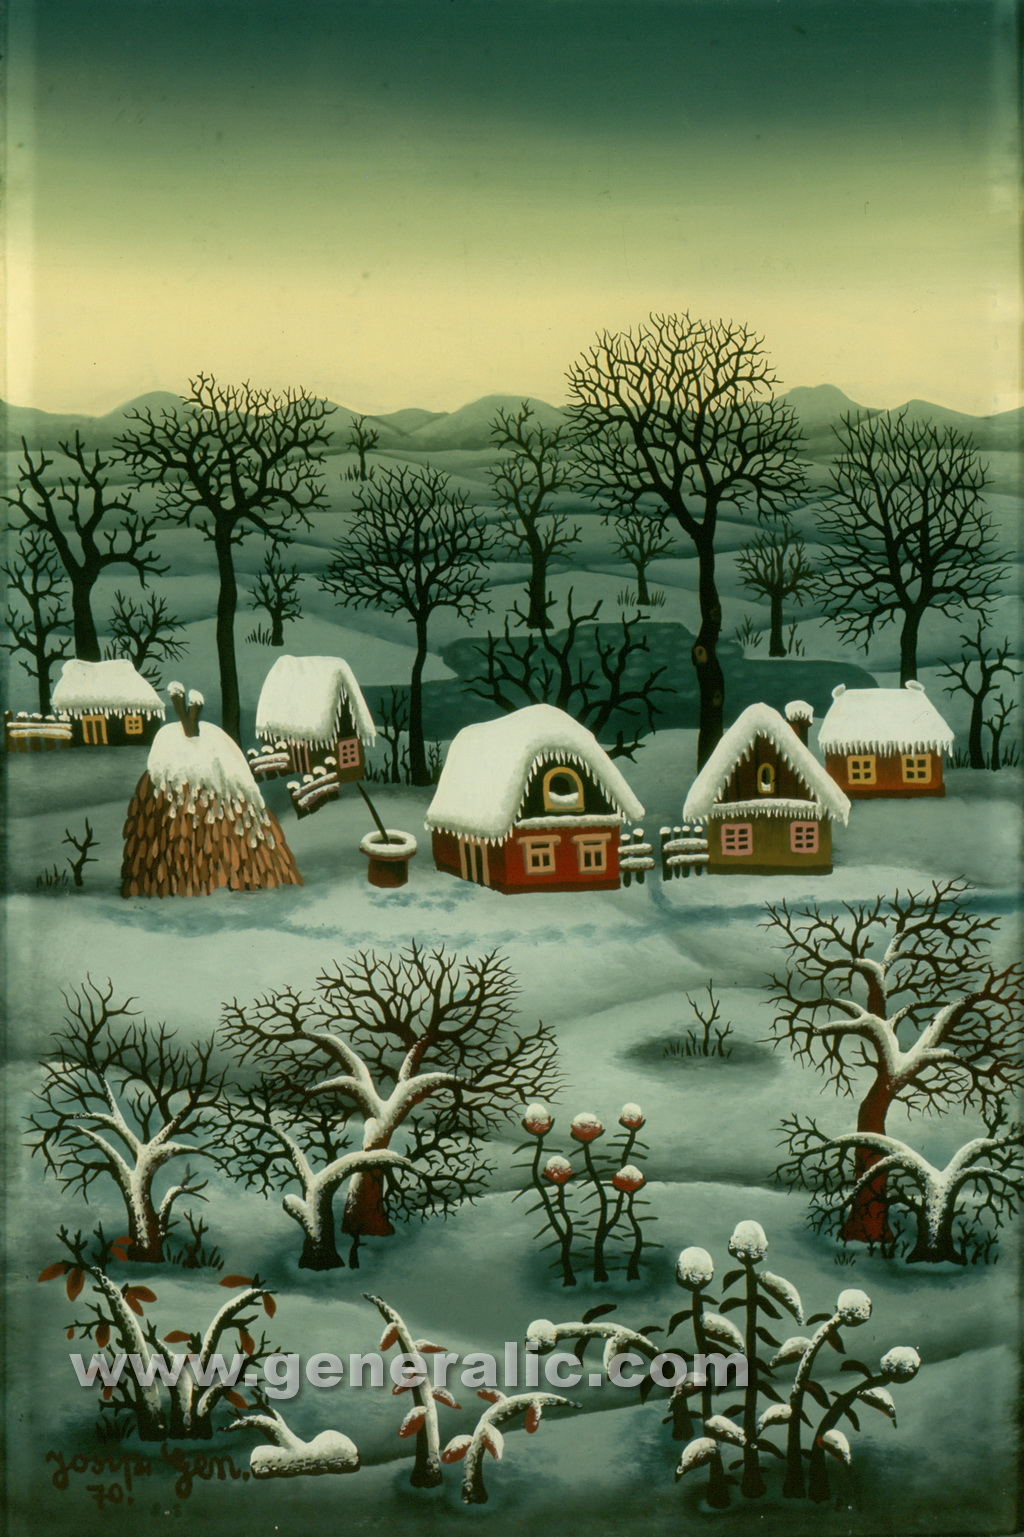 Josip Generalic, 1970, Winter with five houses, oil on glass